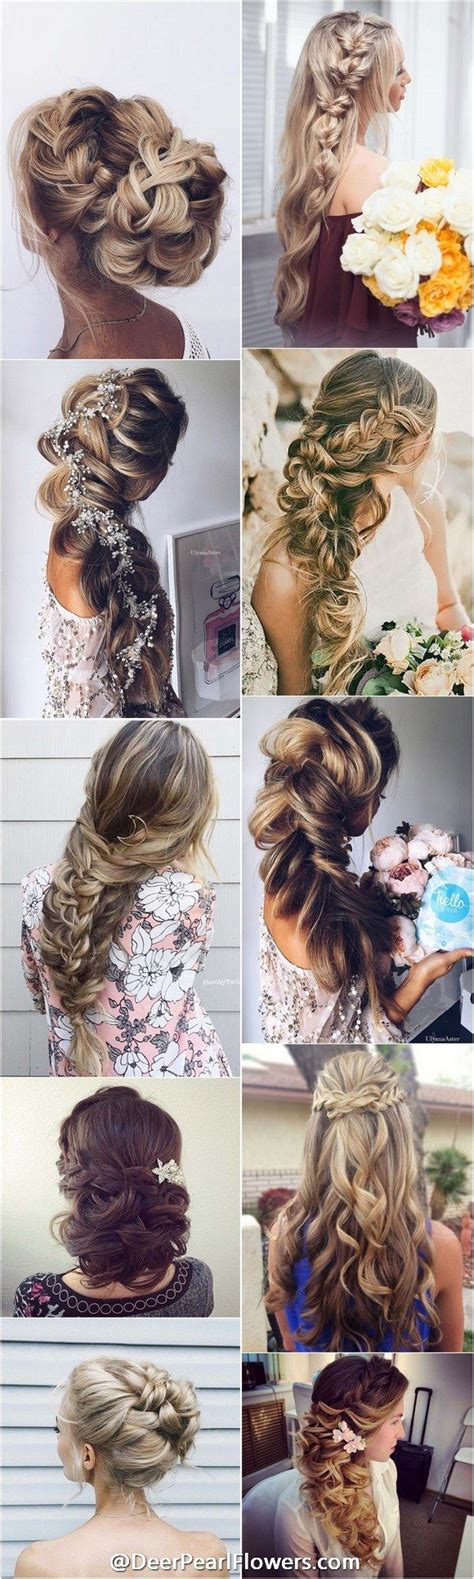 hairstyles for long hair for competition 1000 ideas about dance hairstyles on pinterest ballroom